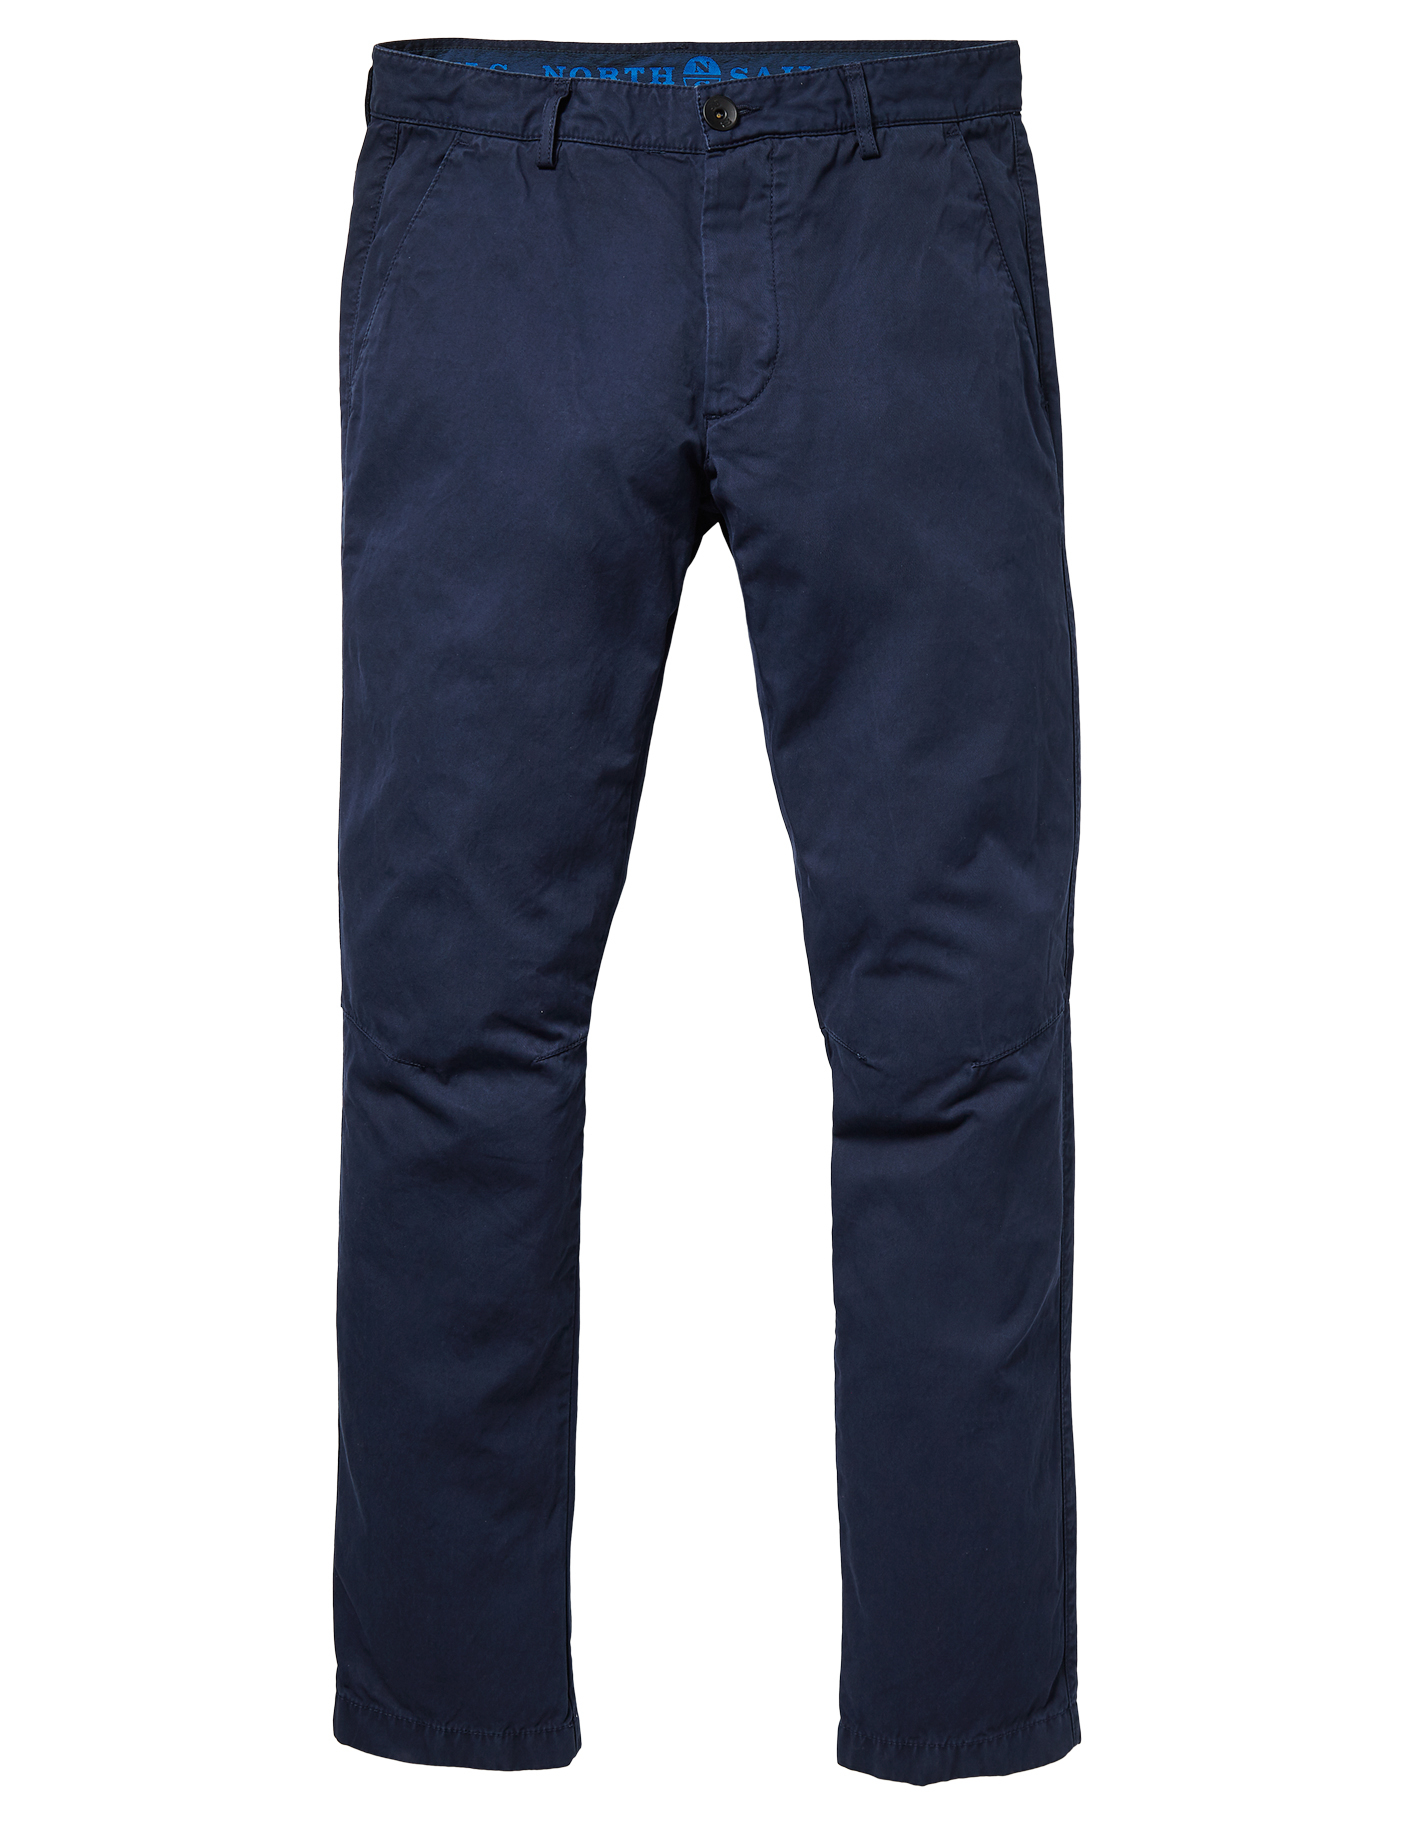 Image of ABBOTS TROUSER